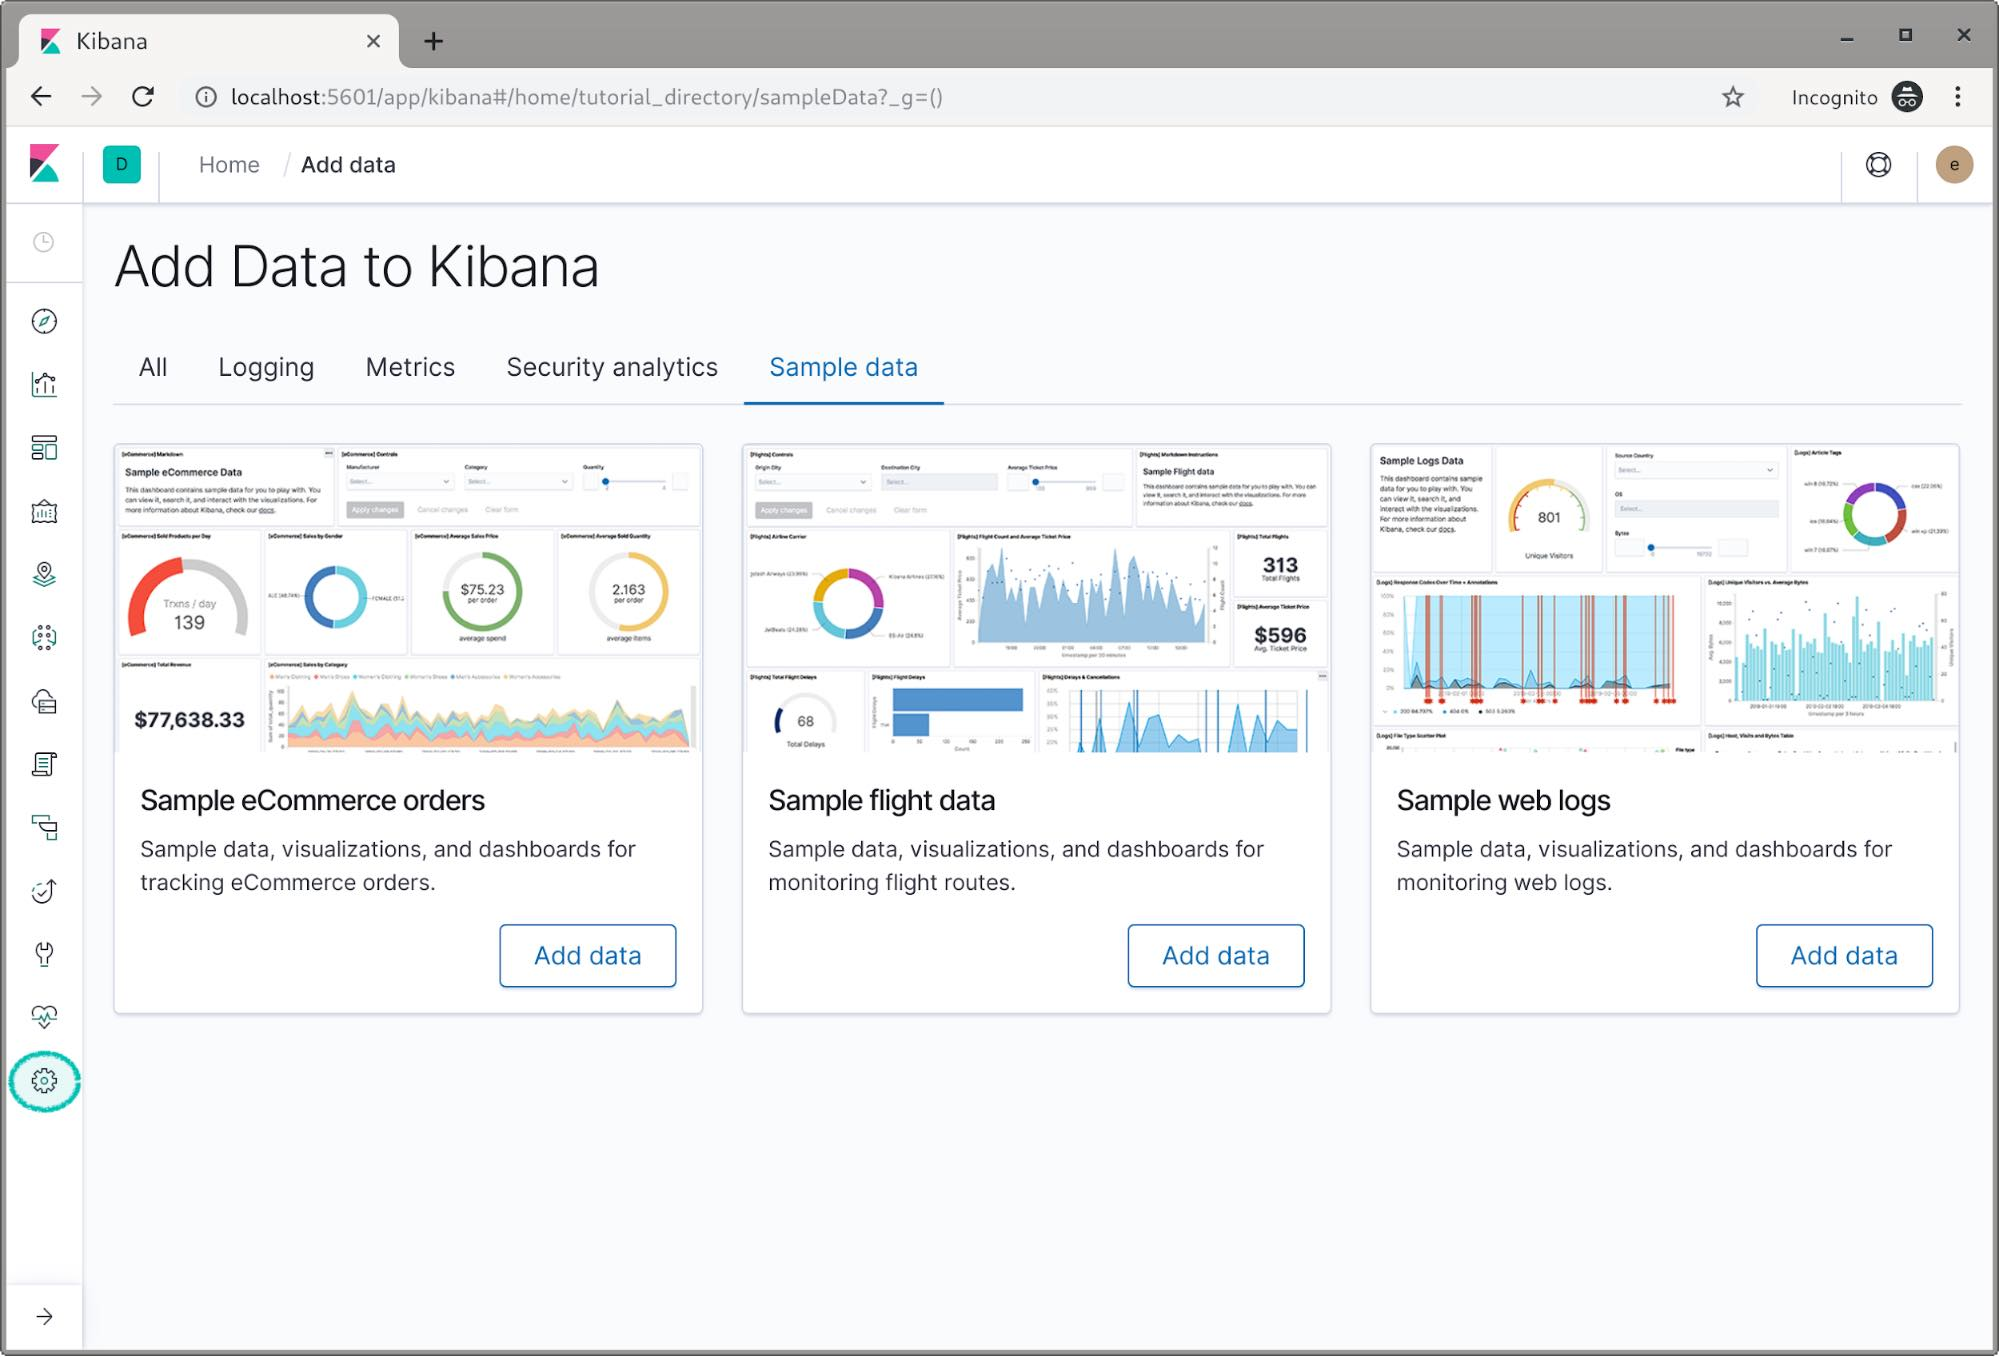 Navigate to management within Kibana